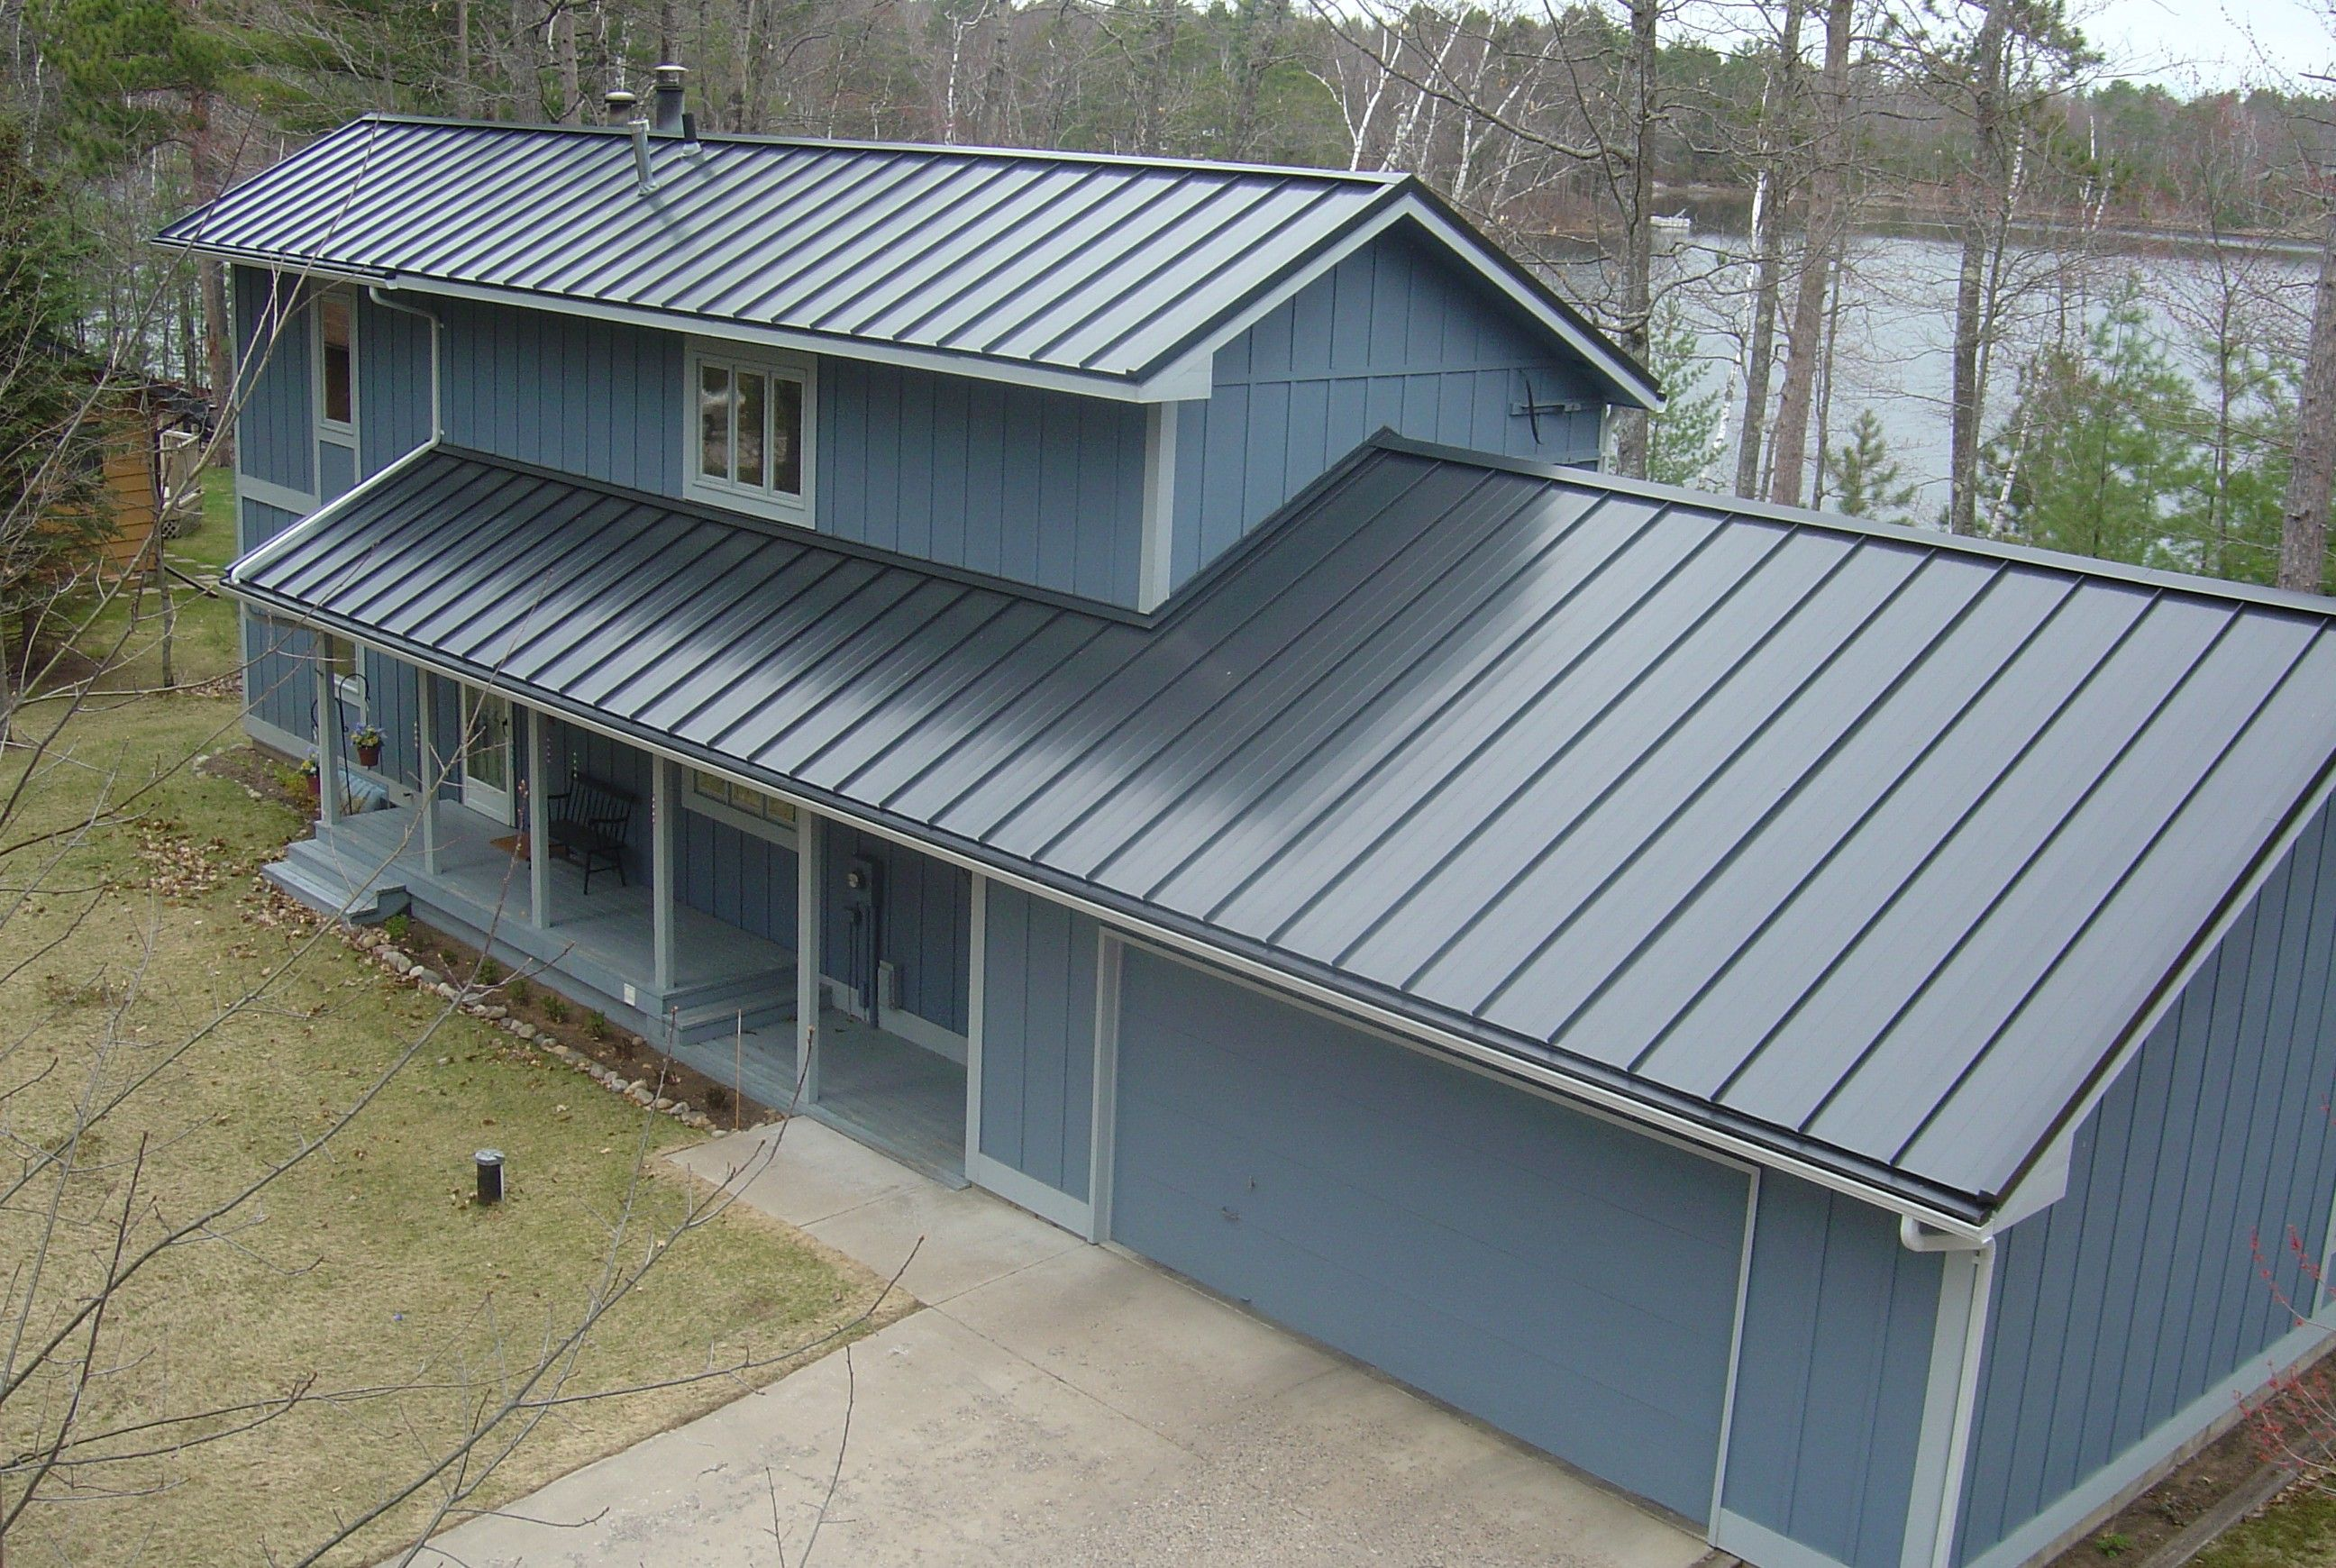 Standing Seam Metal Roof In Slate Gray Metal Provided By Coated Metals Group Www Cmgmetals Com Project Completed By Metal Roof Houses Metal Roof Roof Design